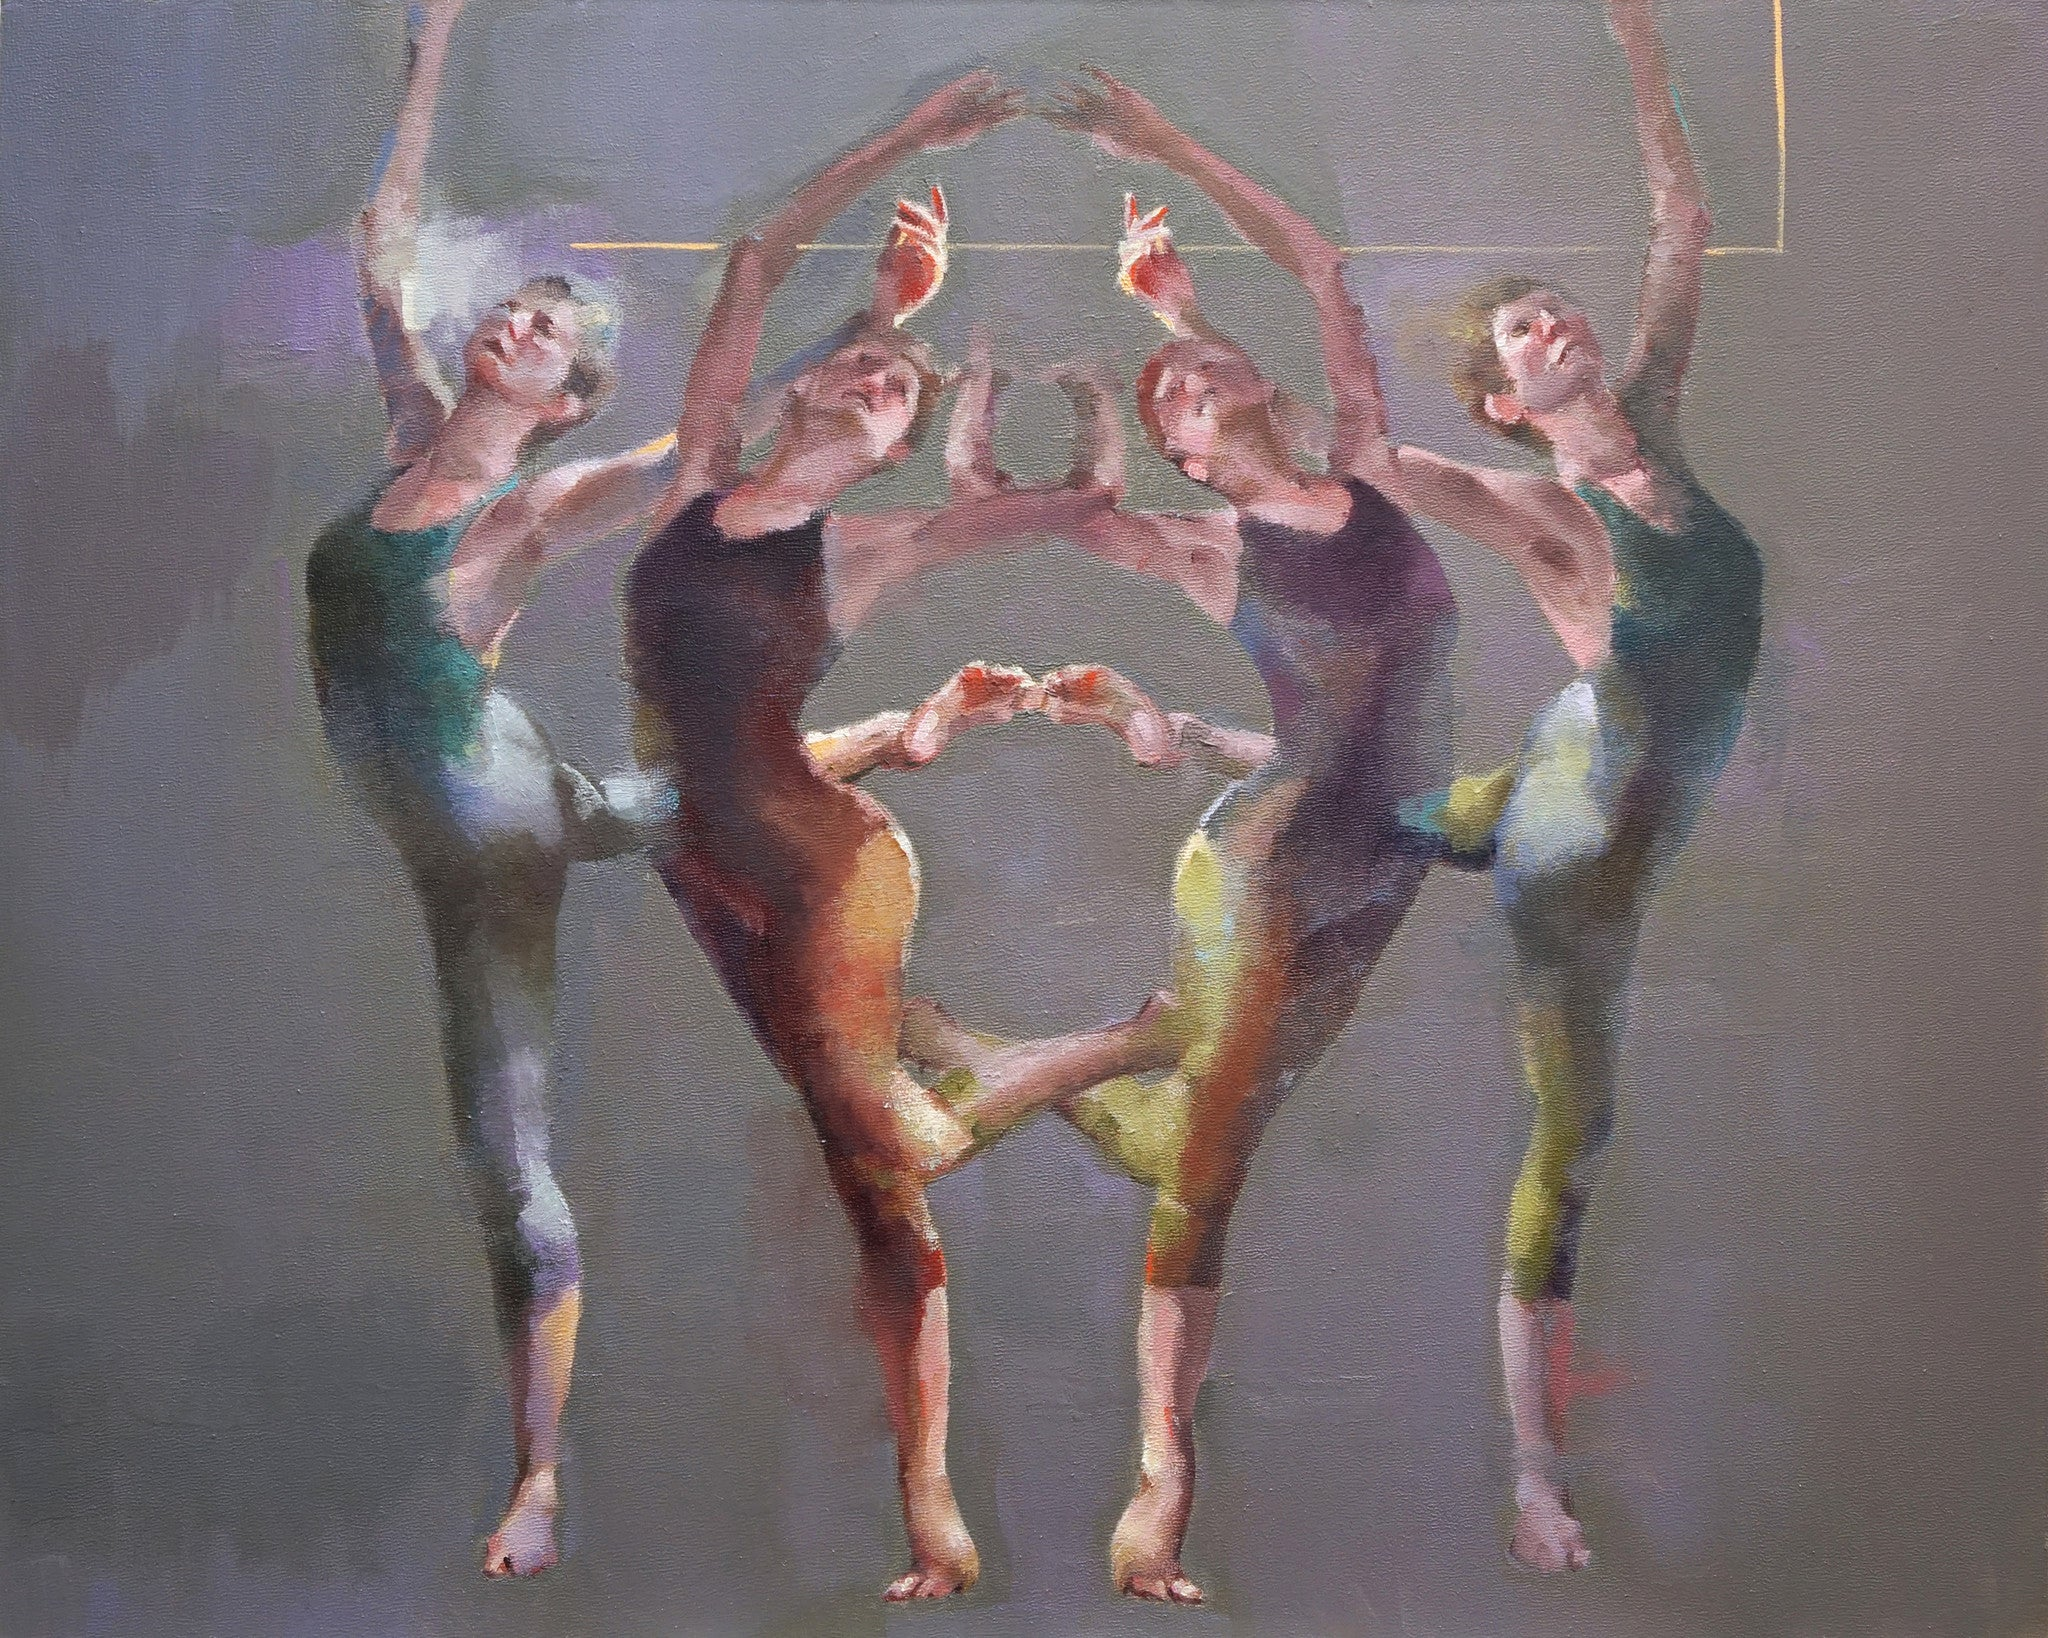 Dancers in Duo / 20 x 16 / oil on canvas